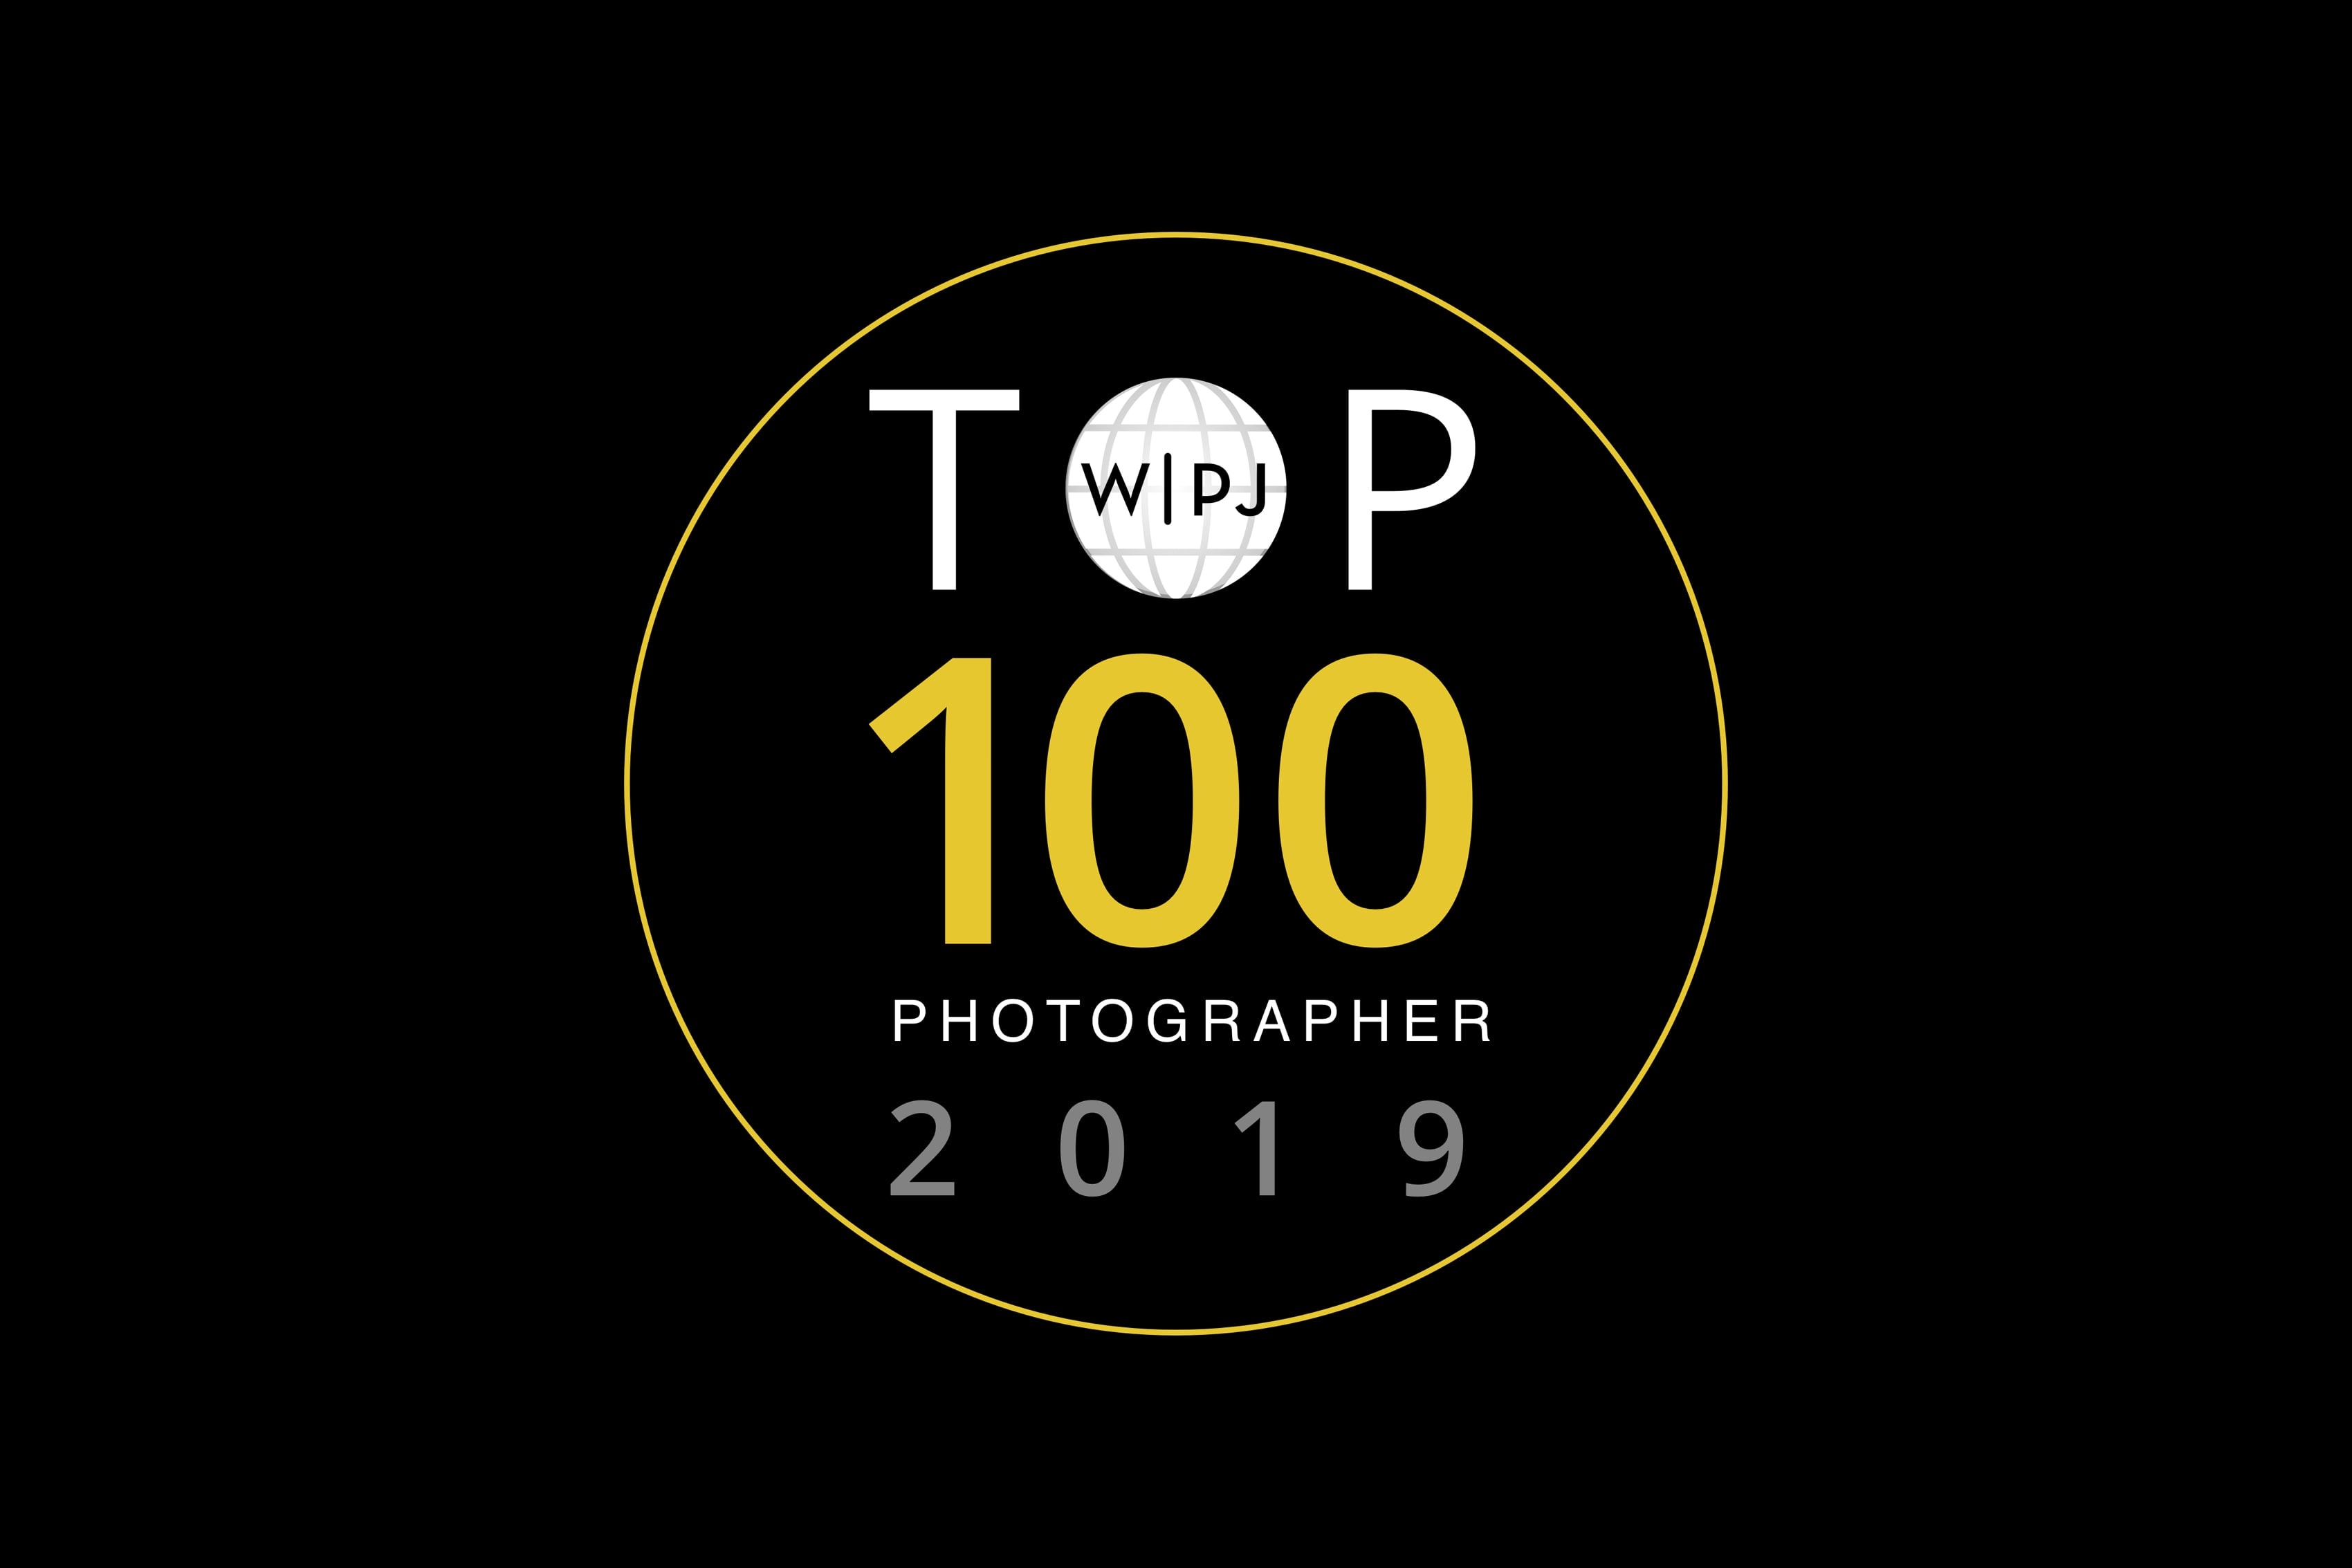 Honored by the Wedding Photojournalist Association